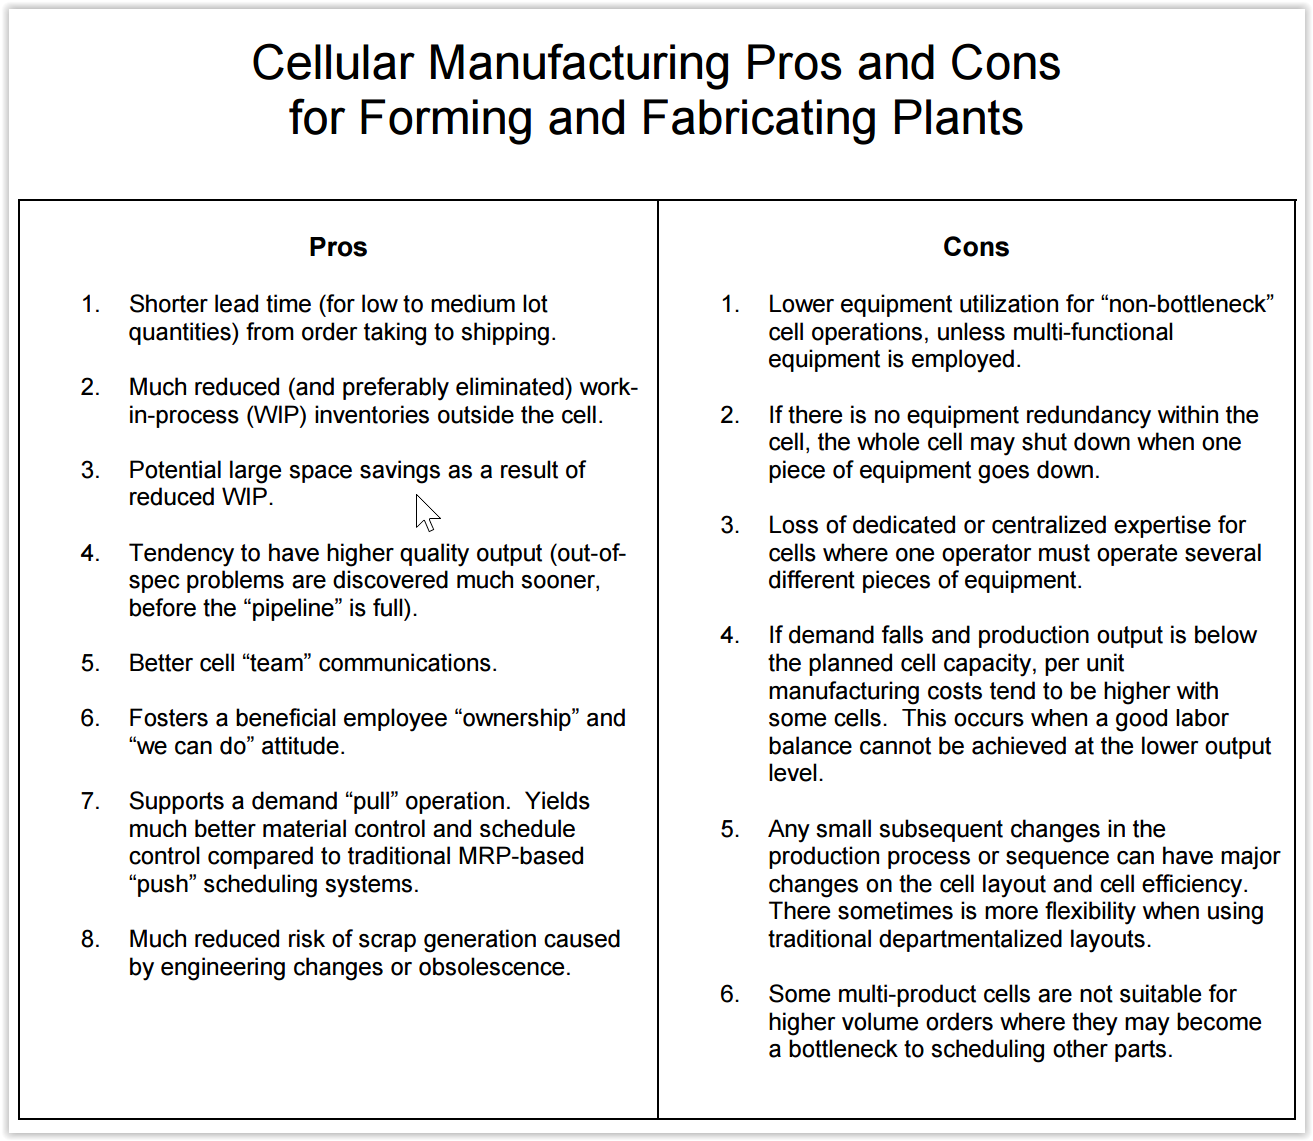 a lean journey the pros and cons of cellular manufacturing simsconsult com prosconsleanmanuf formfab2 pdf